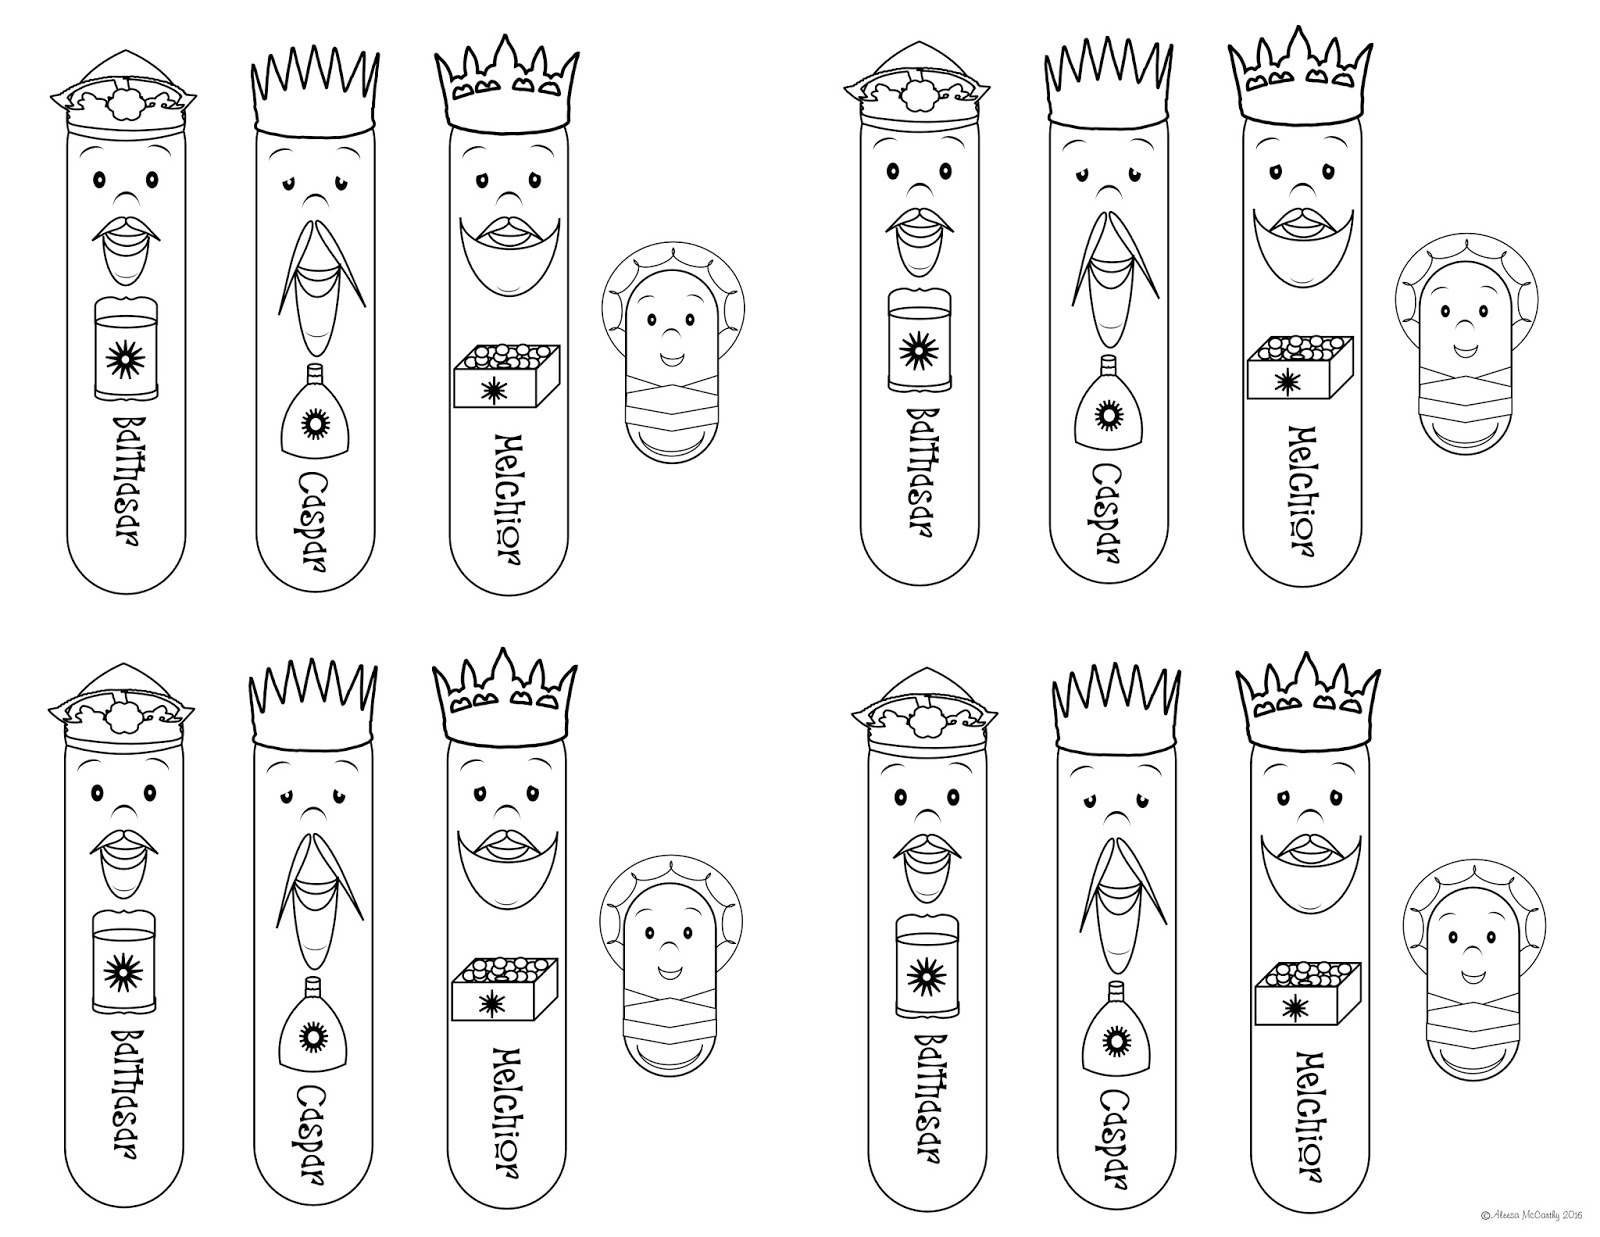 Free coloring pages epiphany - There Are 4 Sets To The Page So If You Have A Bunch Of Little Ones You Can Make Multiple Sets